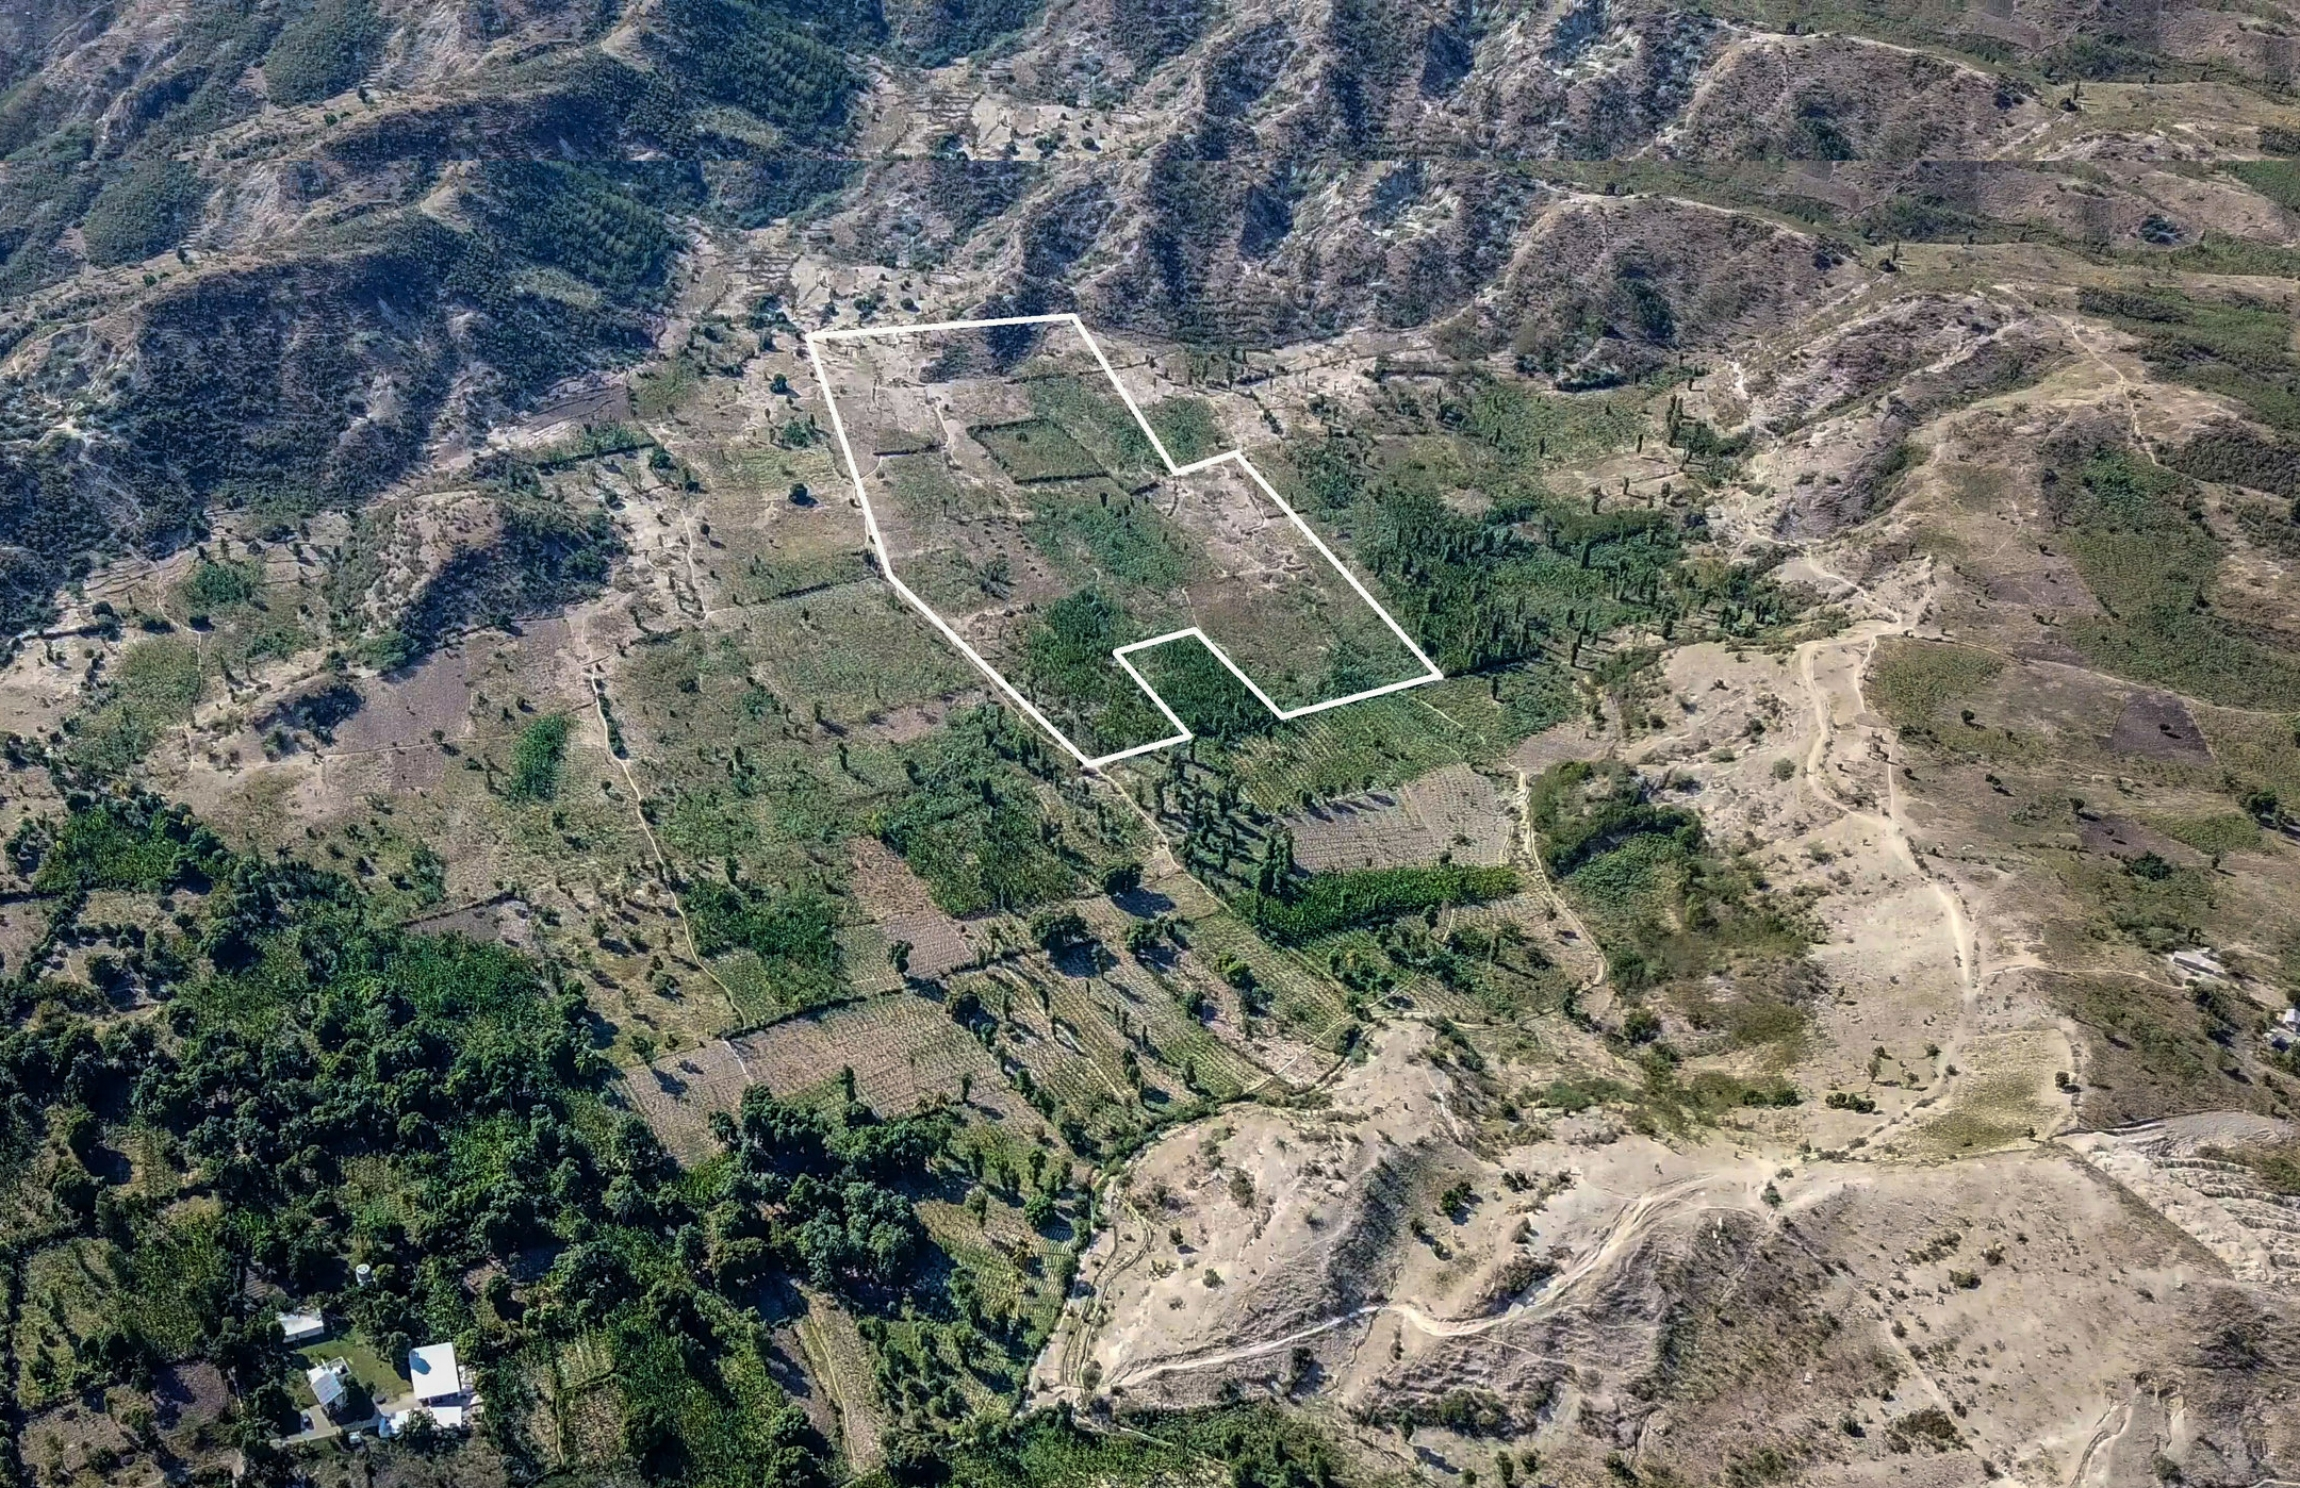 Haiti, Camp Marie, Farming, Community, Mission, Ministry, Construction, Land, Property.